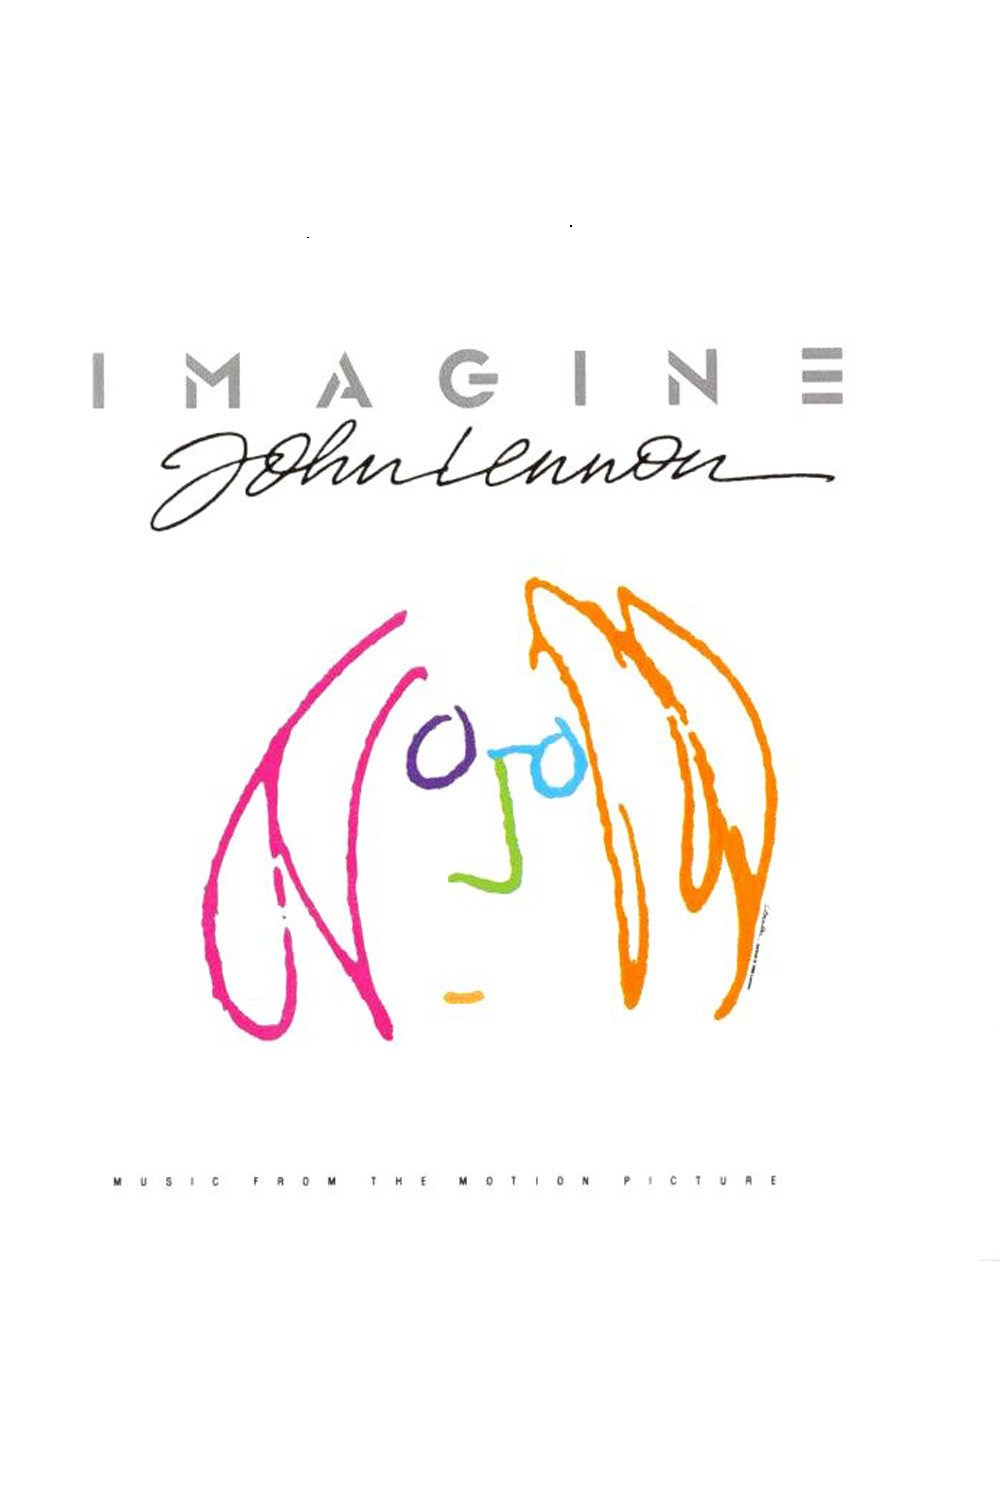 imagine john lennon - photo #16